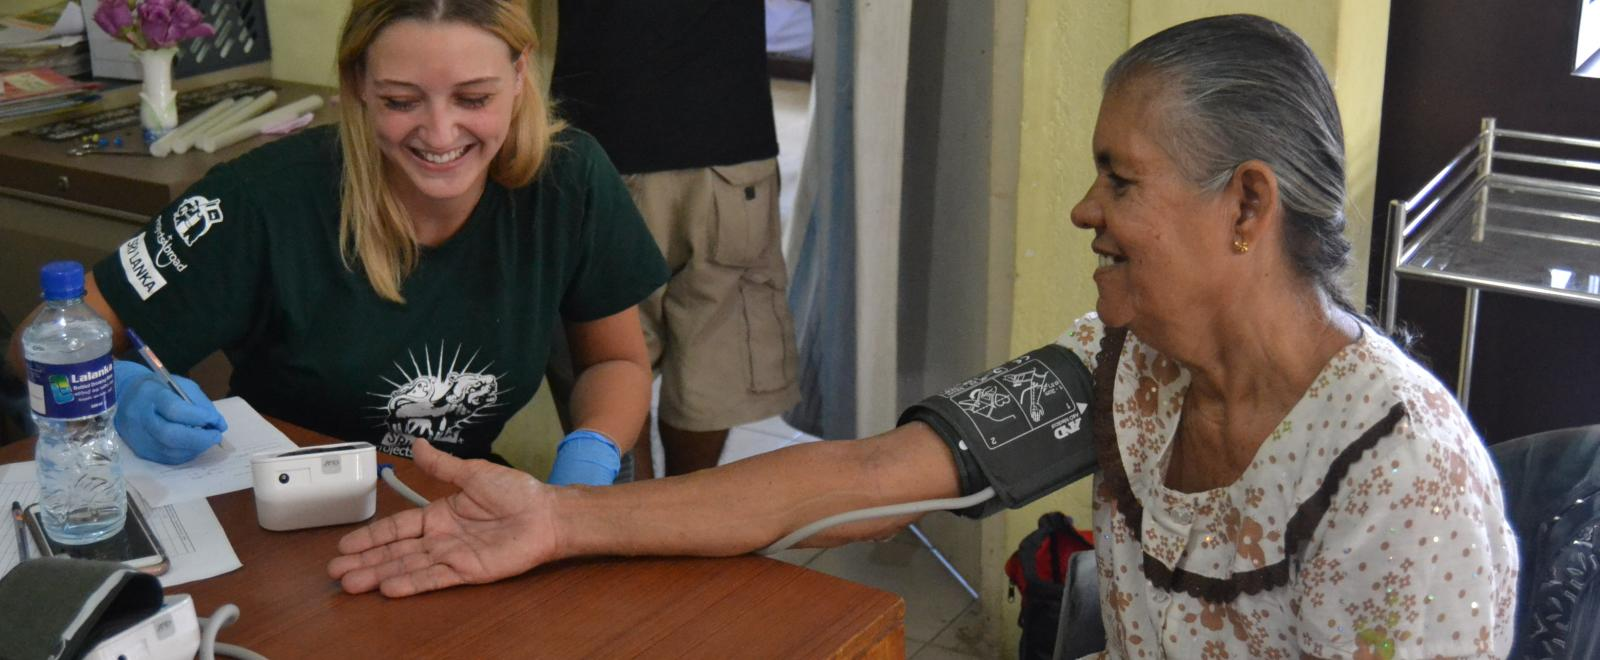 A student doing a medical internship for high school students in Sri Lanka checks blood pressure levels for a local woman.